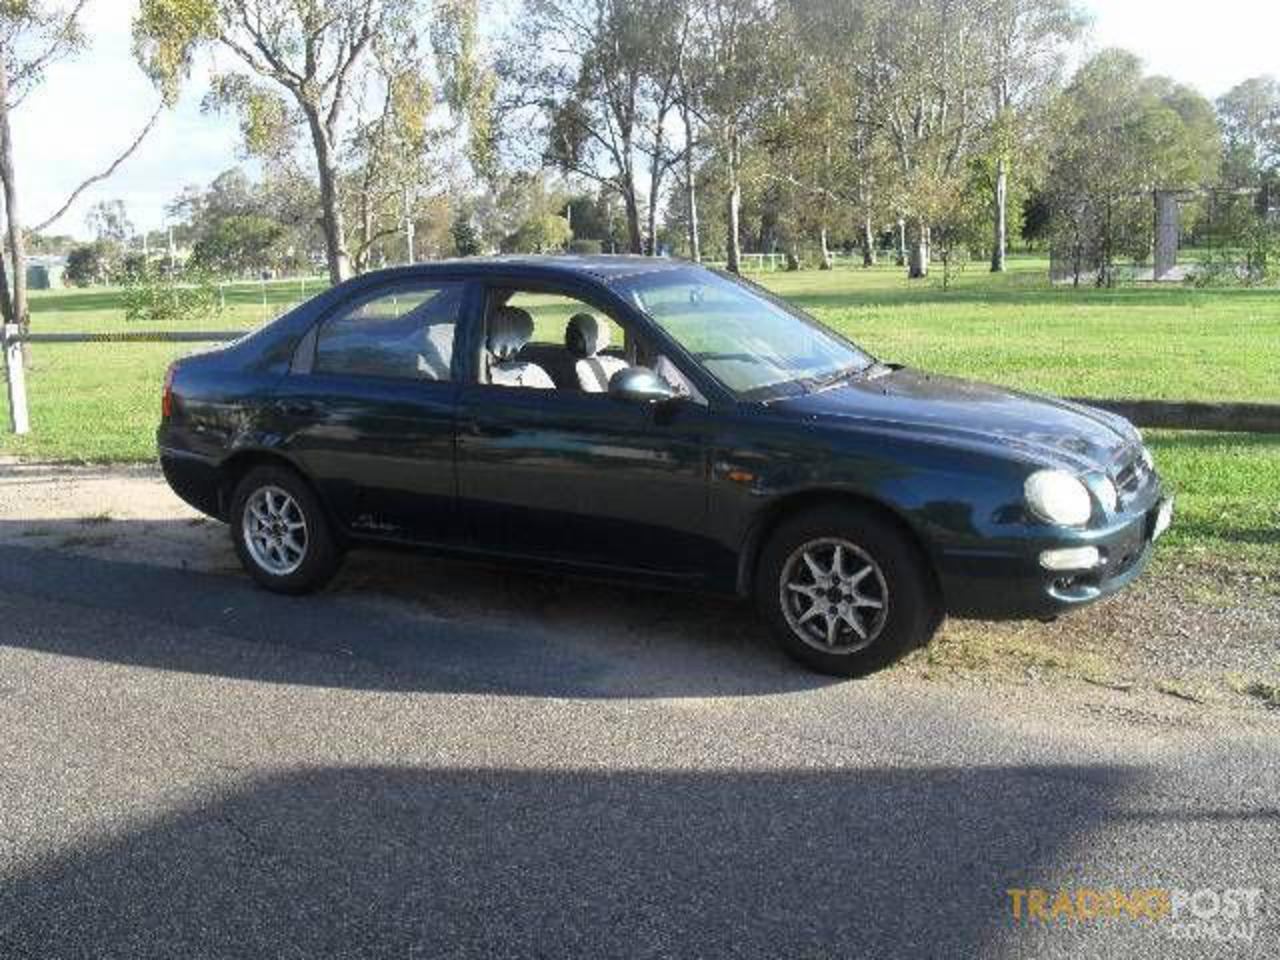 KIA MENTOR GLX 5D HATCHBACK - $3,490.00 Drive Away - Dollis Autos ...